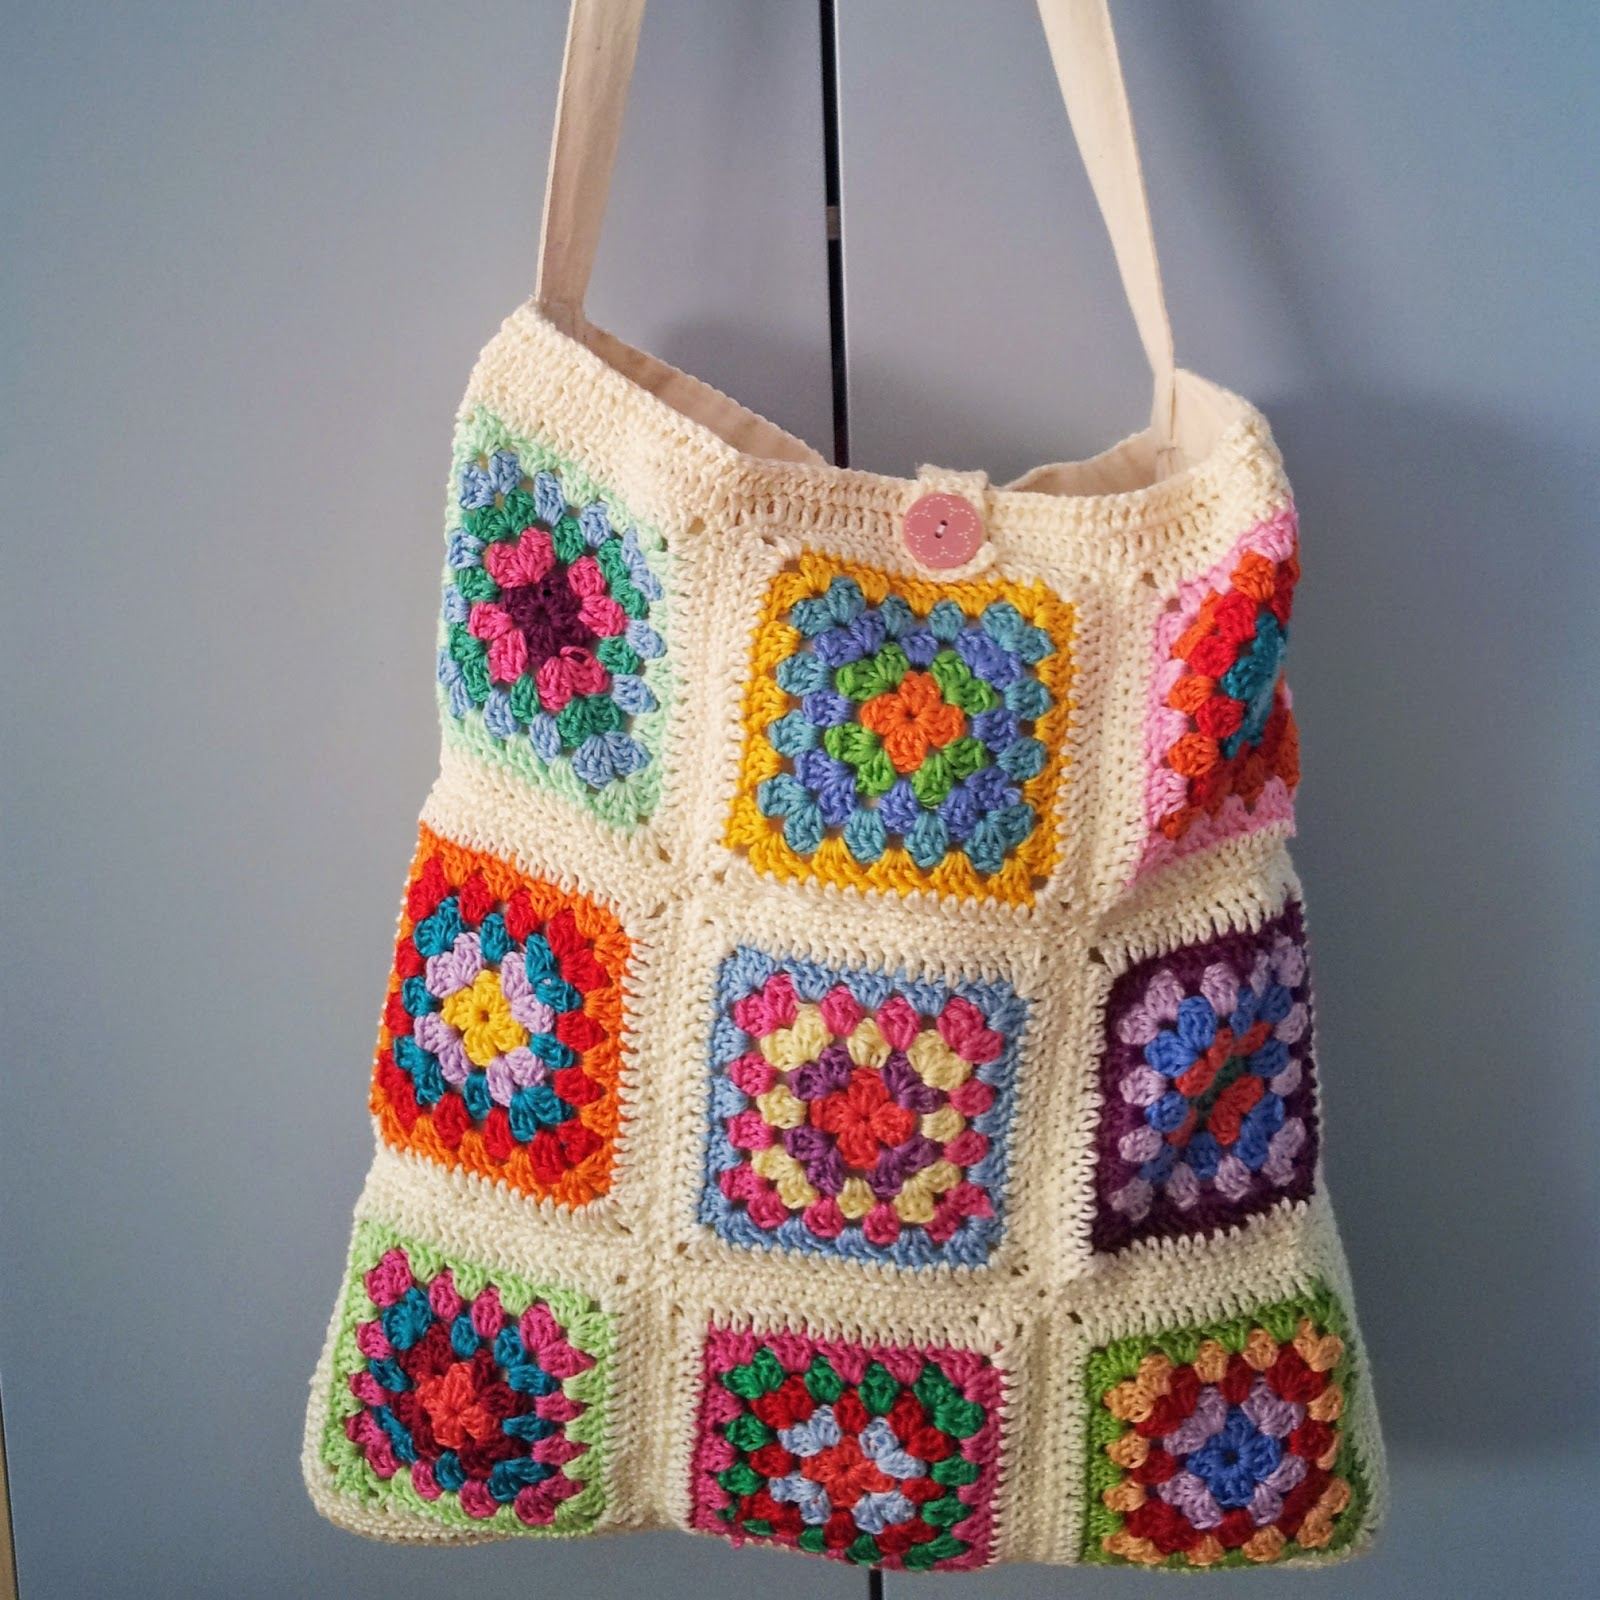 The Adventures Of The Gingerbread Lady Tutorial Lo So Crochet Tote Bag